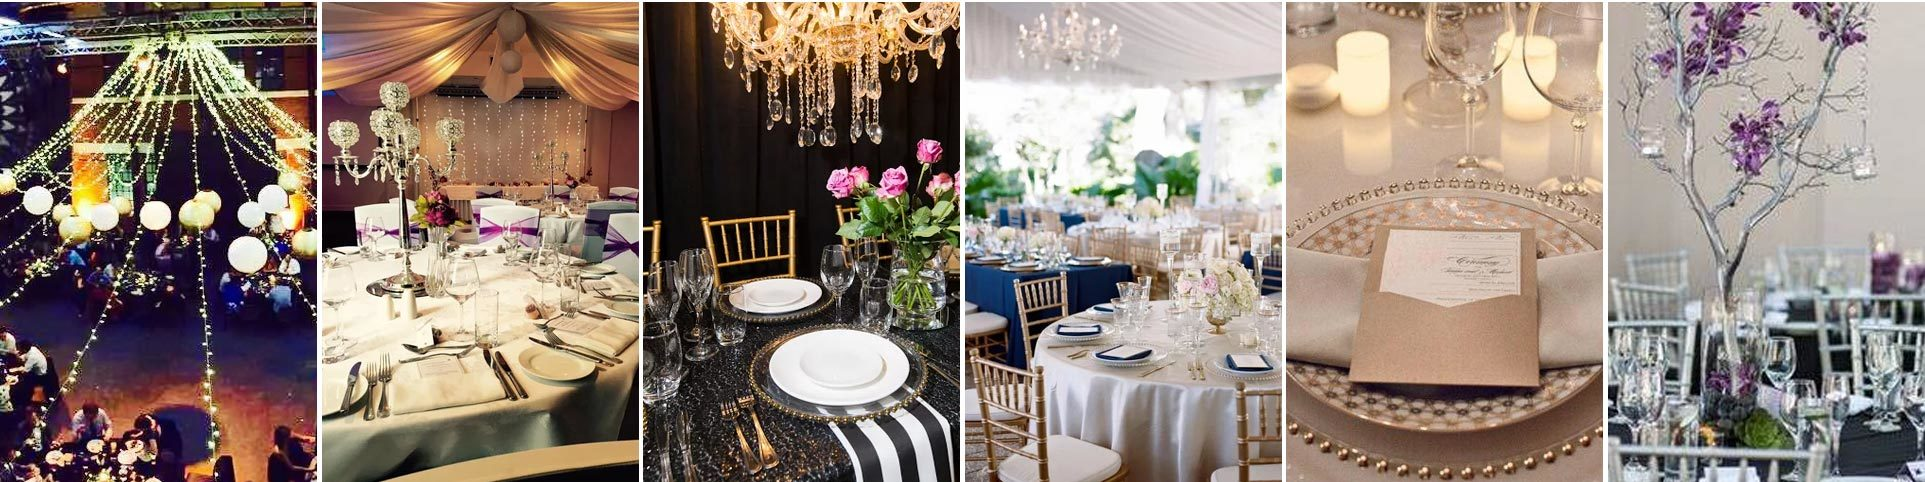 High Quality Party Hire Hamilton Wedding Table Decorations Hire